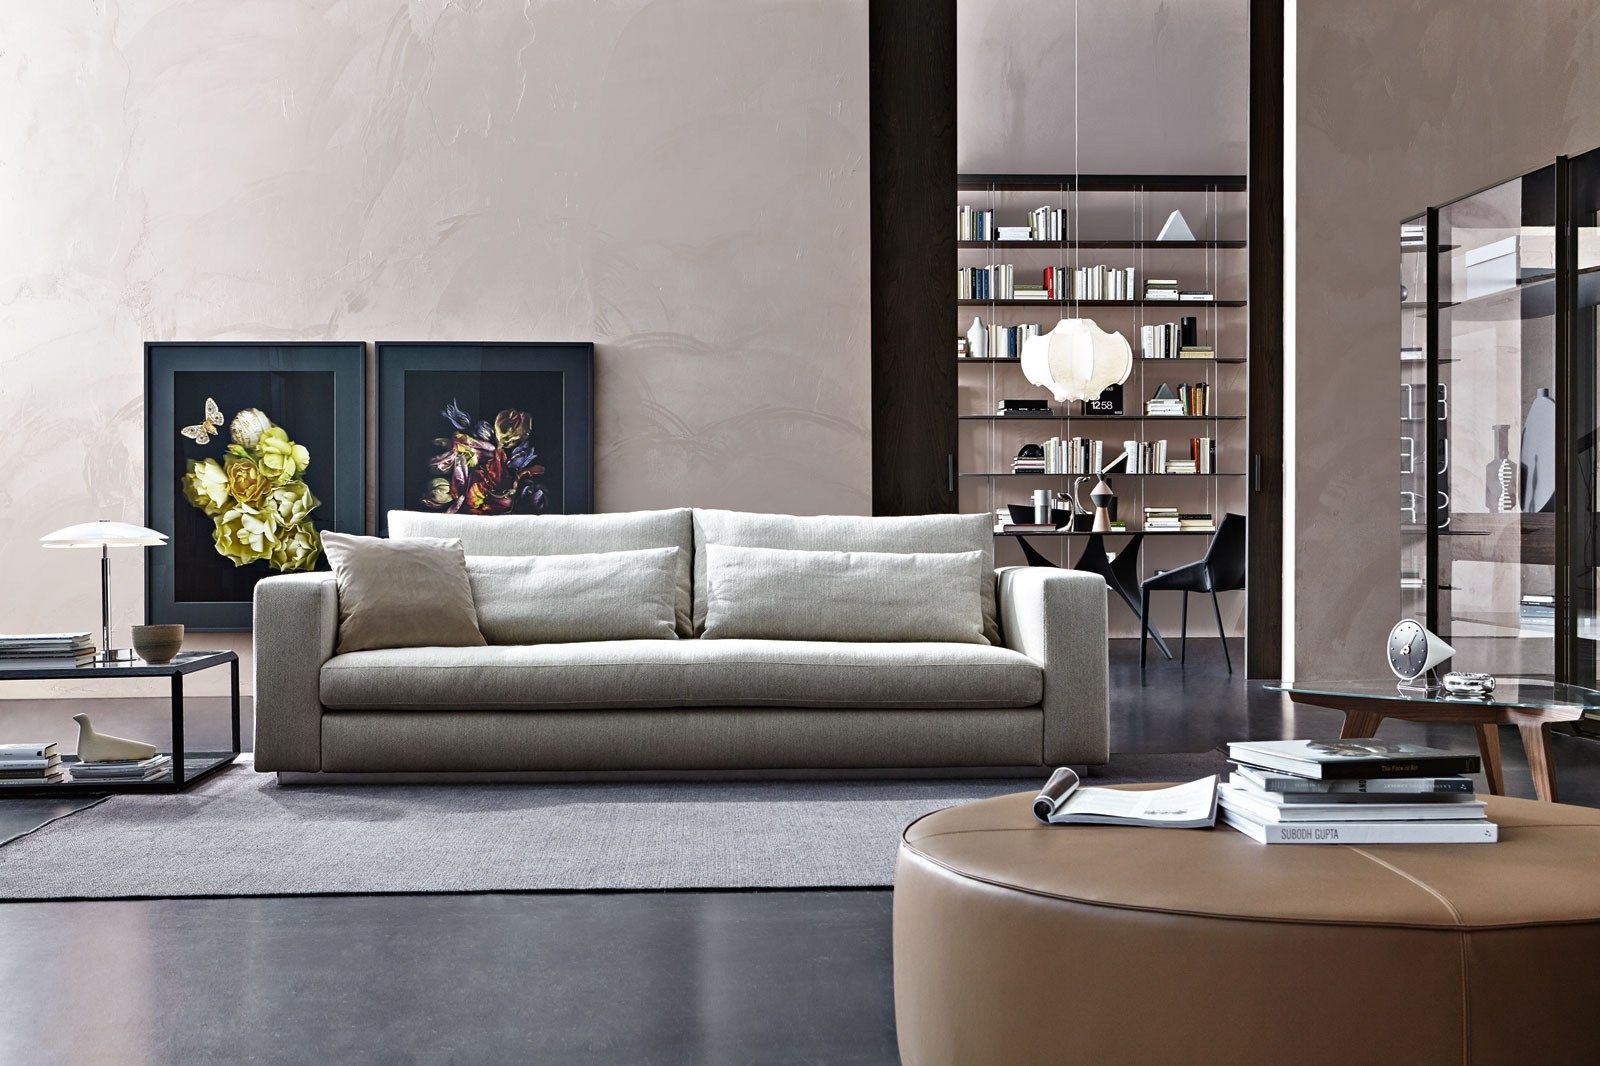 48575_01 (1633×1225) | Interiors | Pinterest | Living Rooms, Dream  Furniture And Room